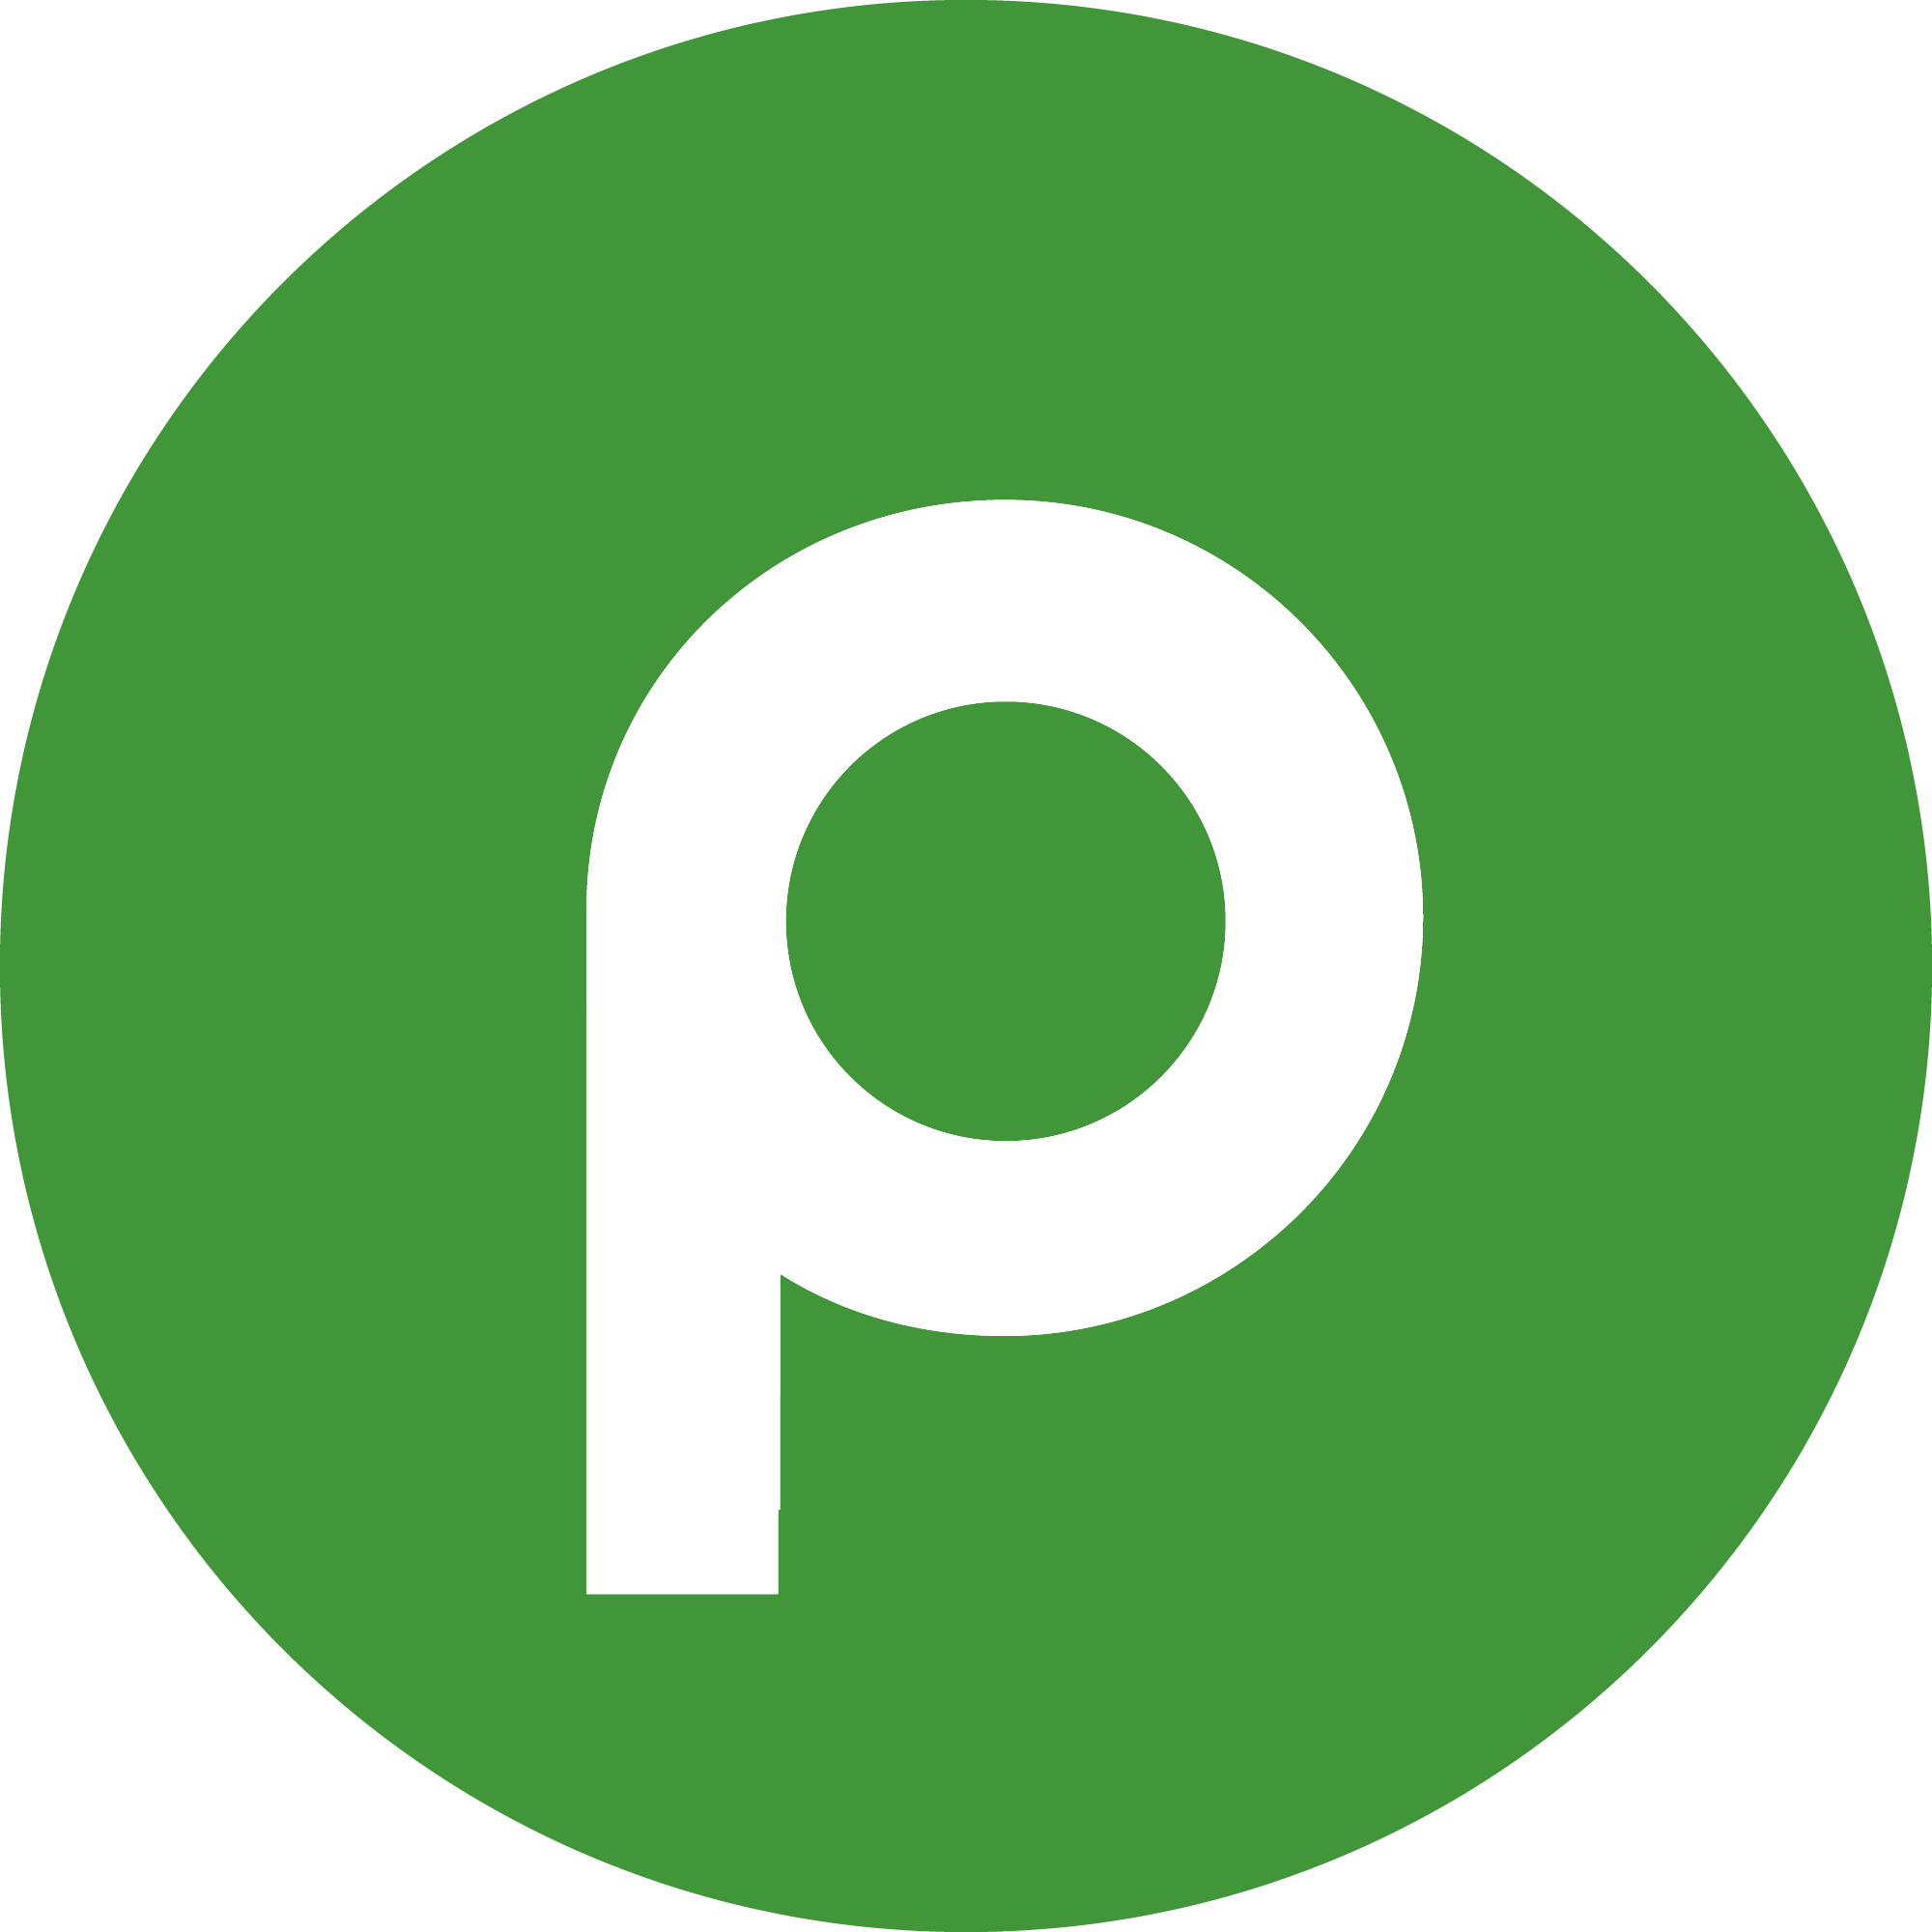 publix workplaces in retail png logo #5252